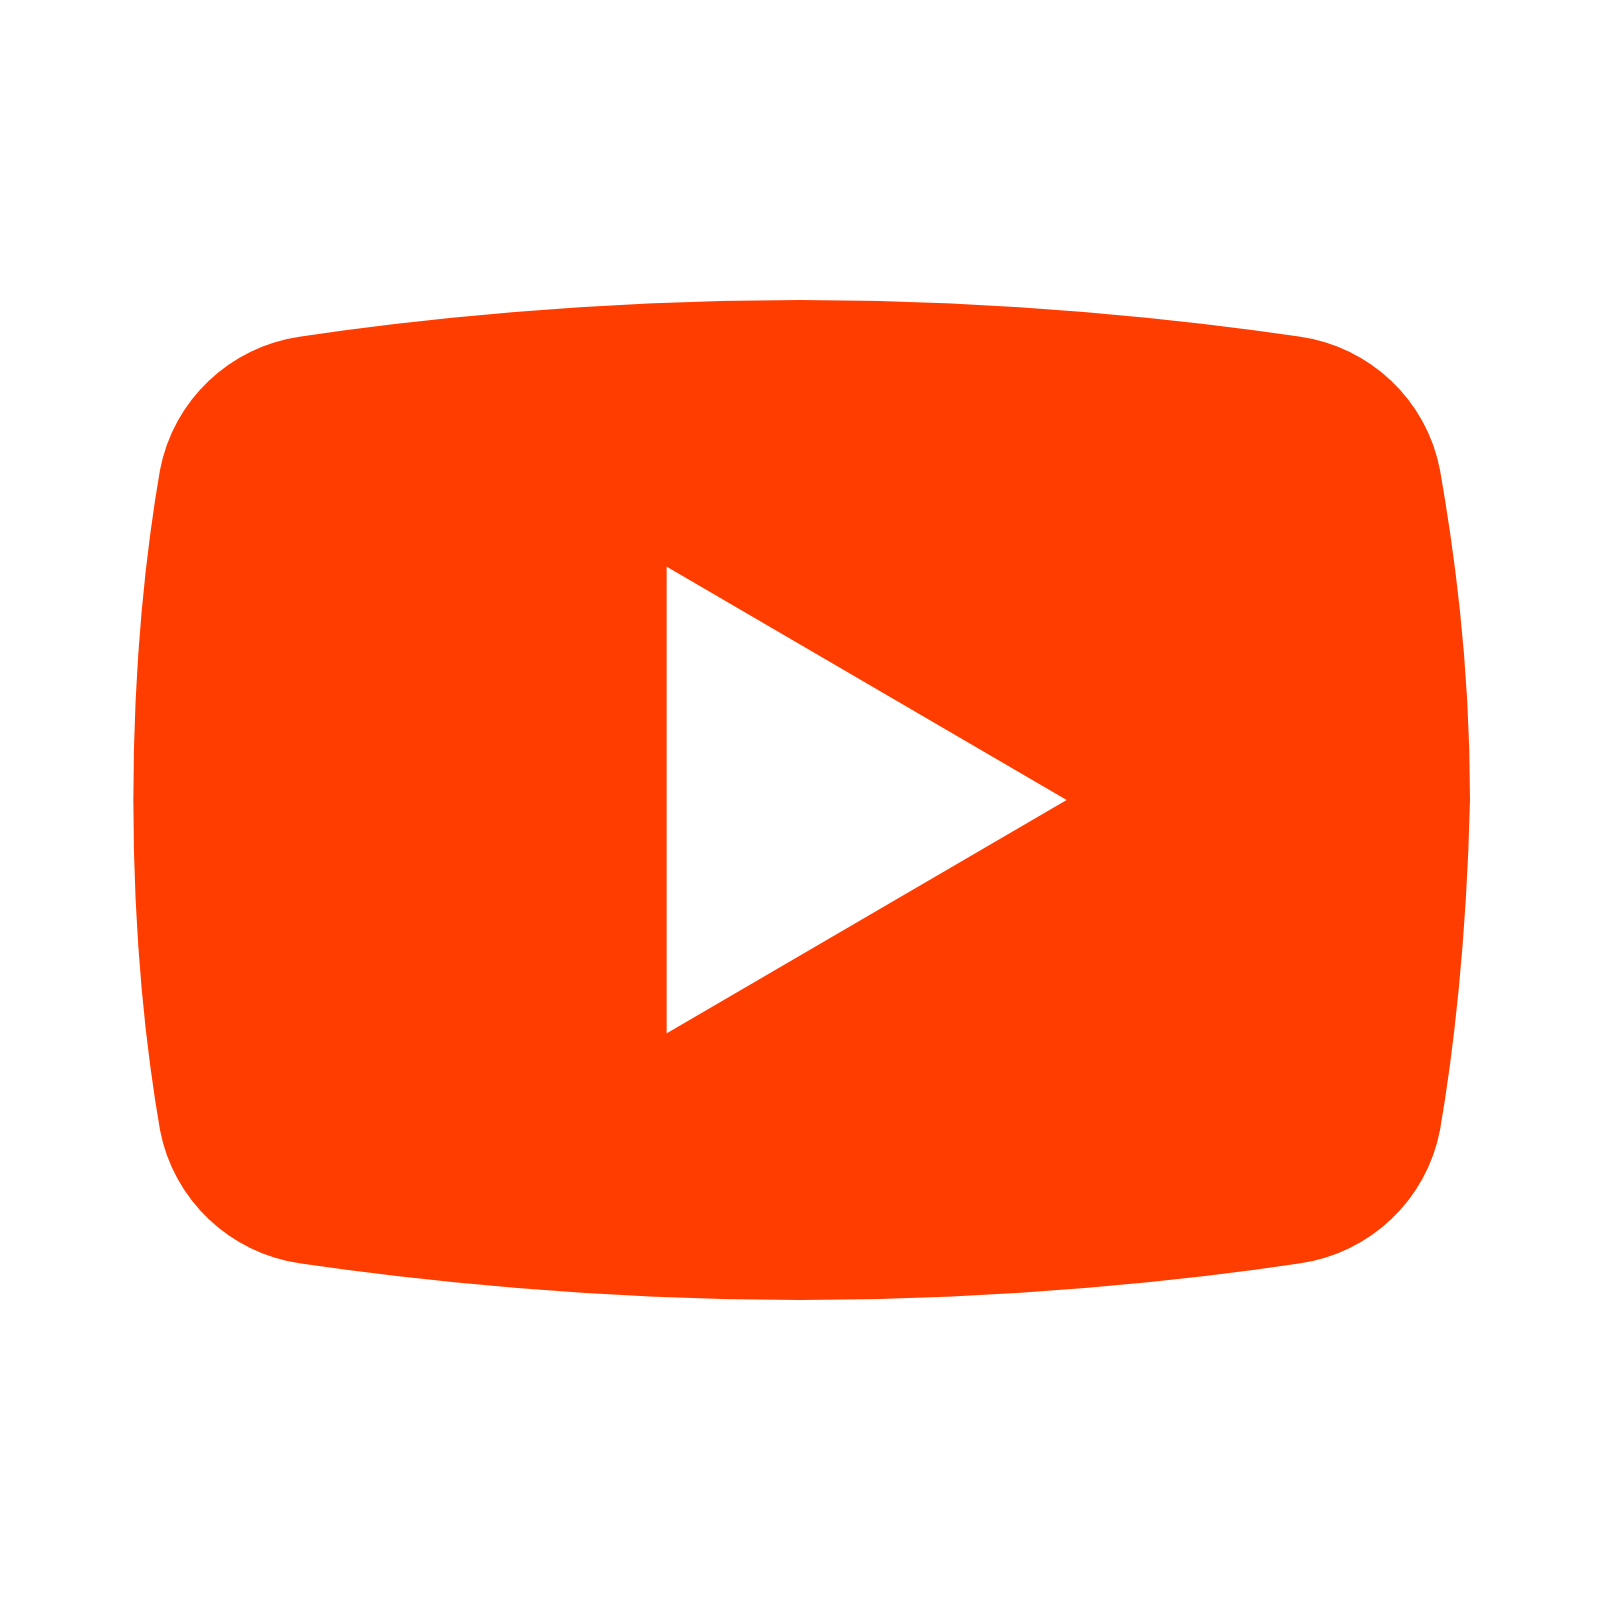 youtube-png-5923